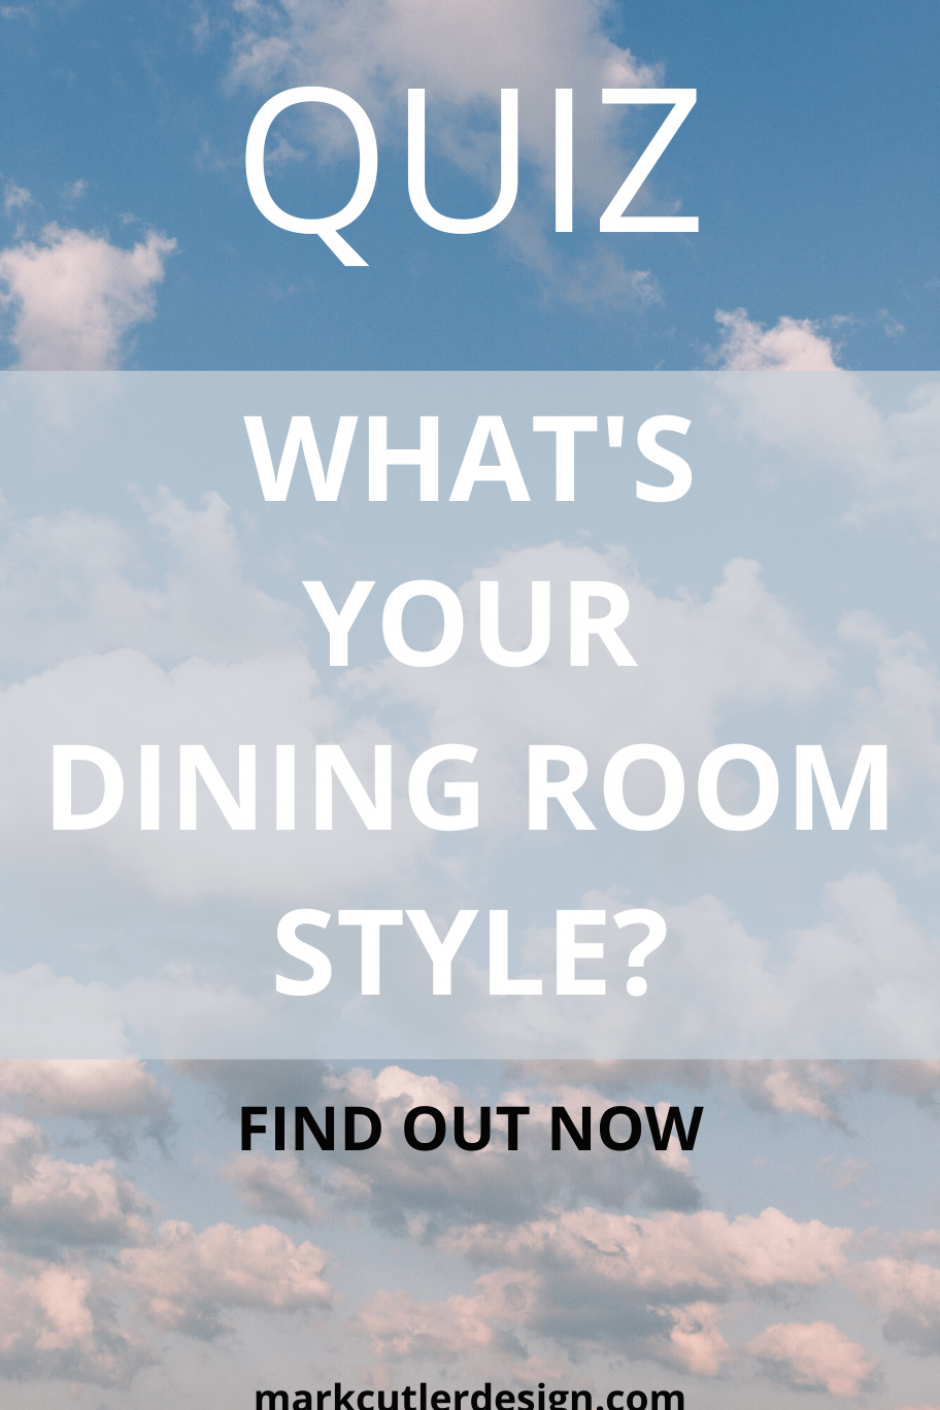 Style quiz for Dining Room design tips and ideas by celebrity Interior Designer  Find your dining room style by answering this fun quiz in all styles from traditional to modern  Sign up to get our weekly newsletter full of design tips and news    interiordesignquiz  decortips your decorating styles quiz home